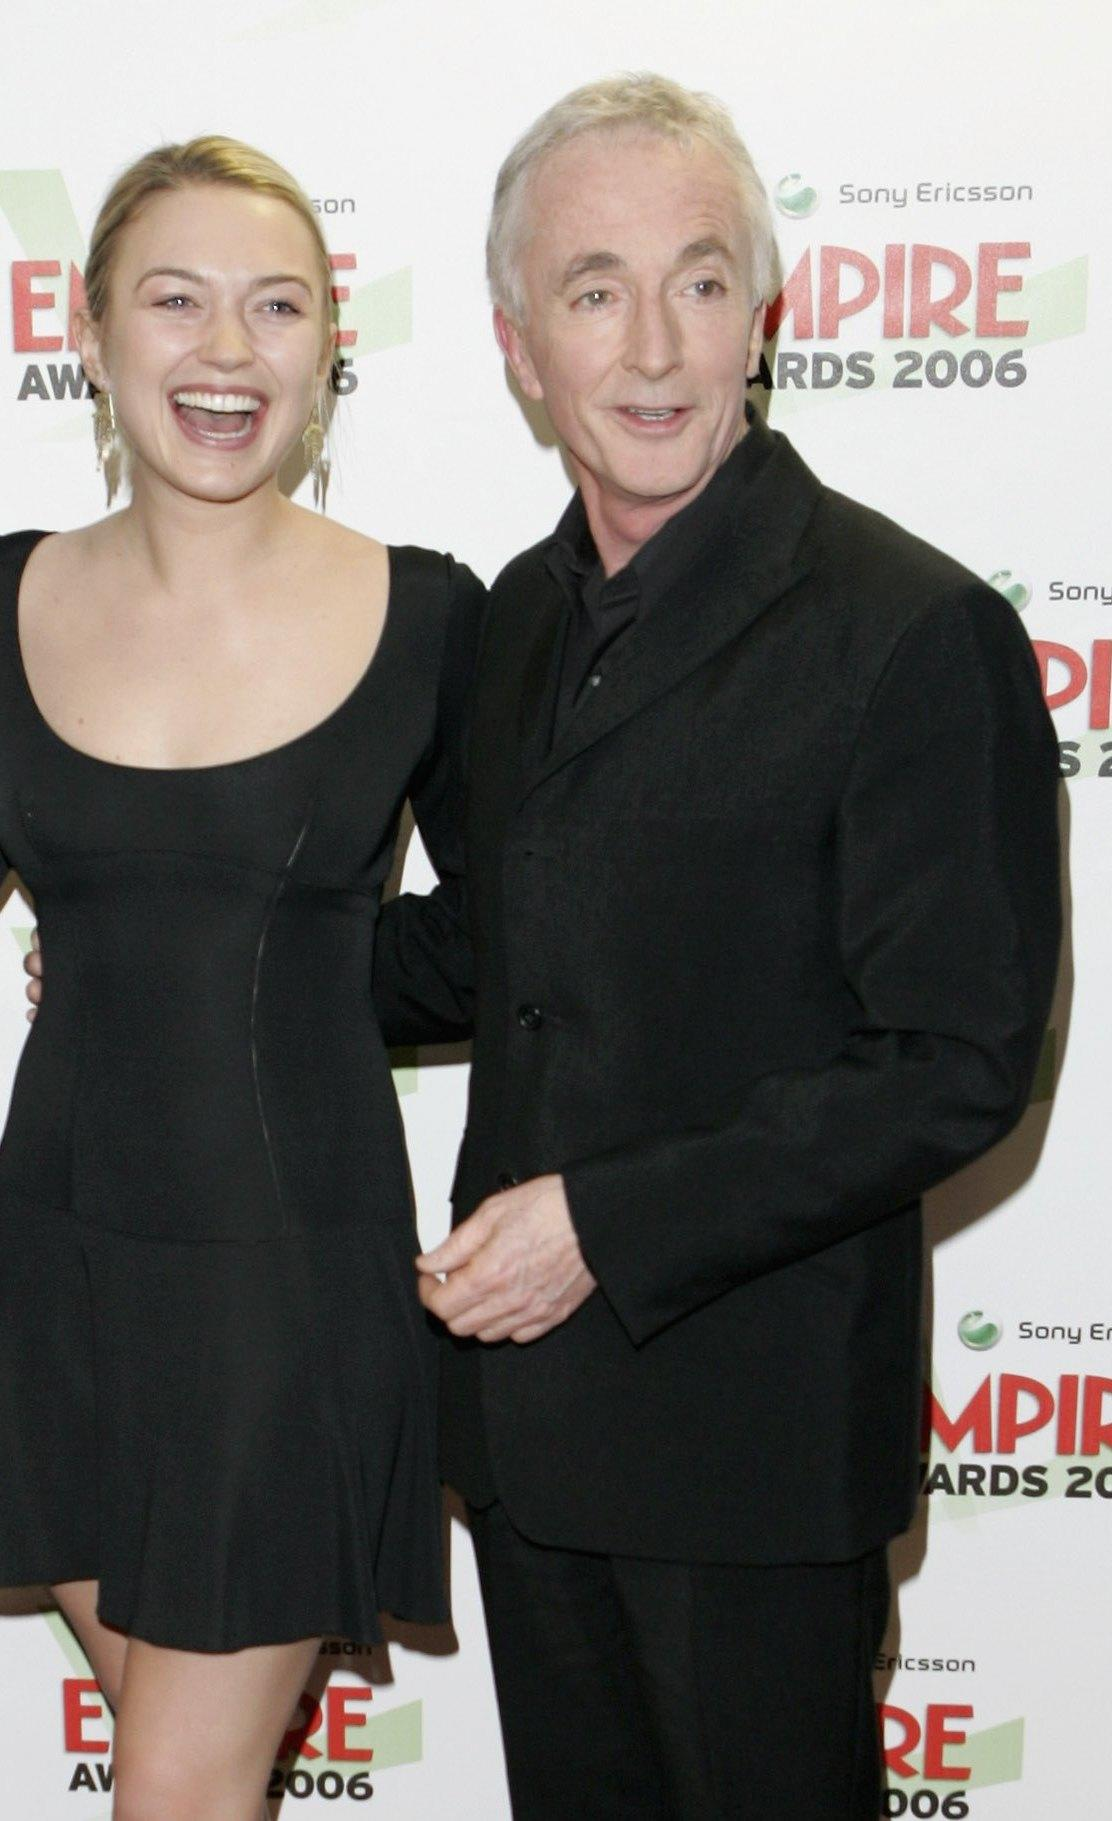 Sophia Myles and Anthony Daniels at the Sony Ericsson Empire Film Awards 2006.